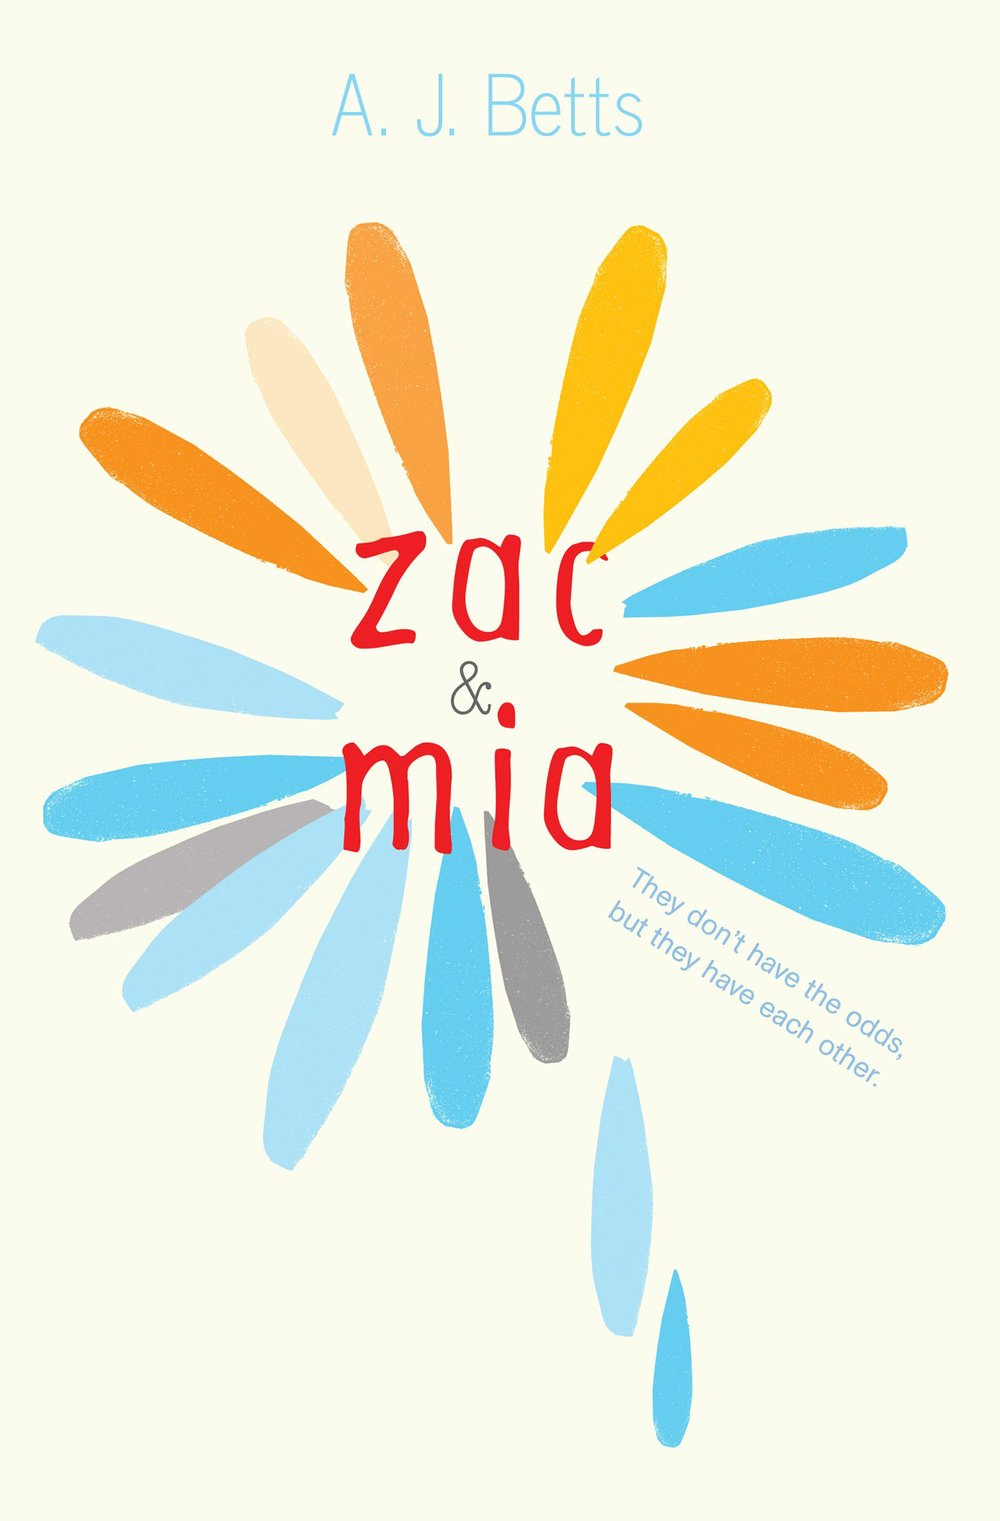 Zac & Mia by A.J. Betts (Sept. 2014) Amazon | Goodreads